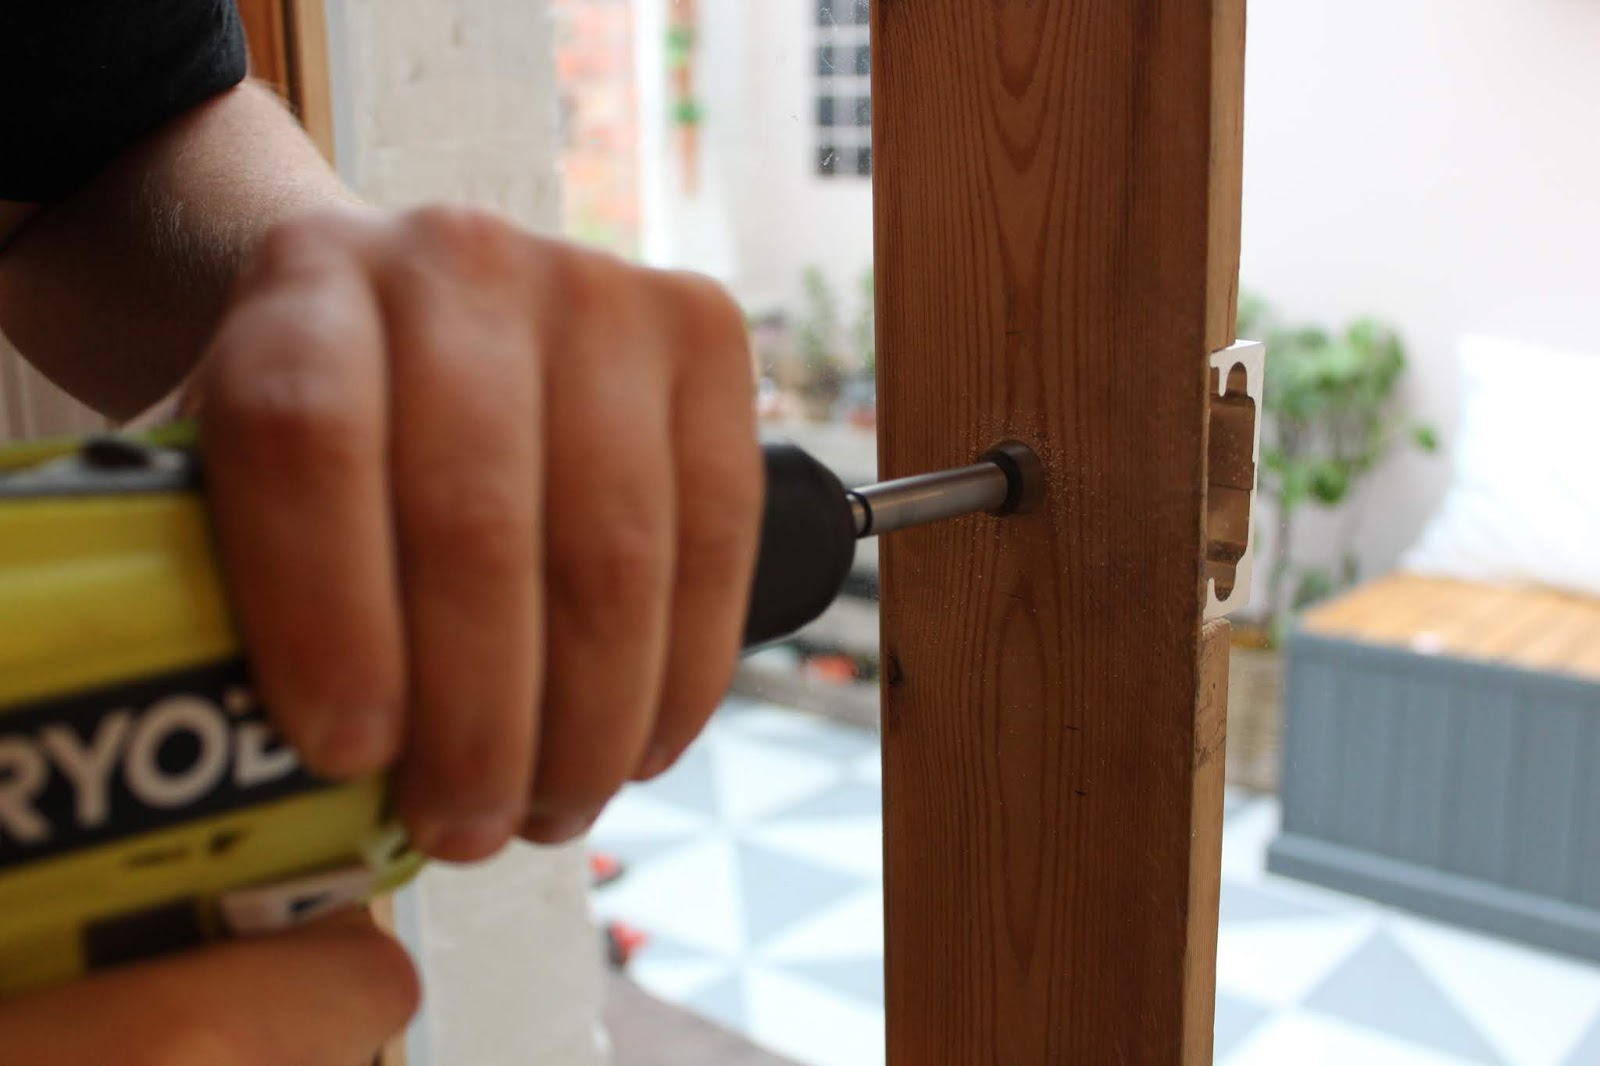 fitting handles on glazed door